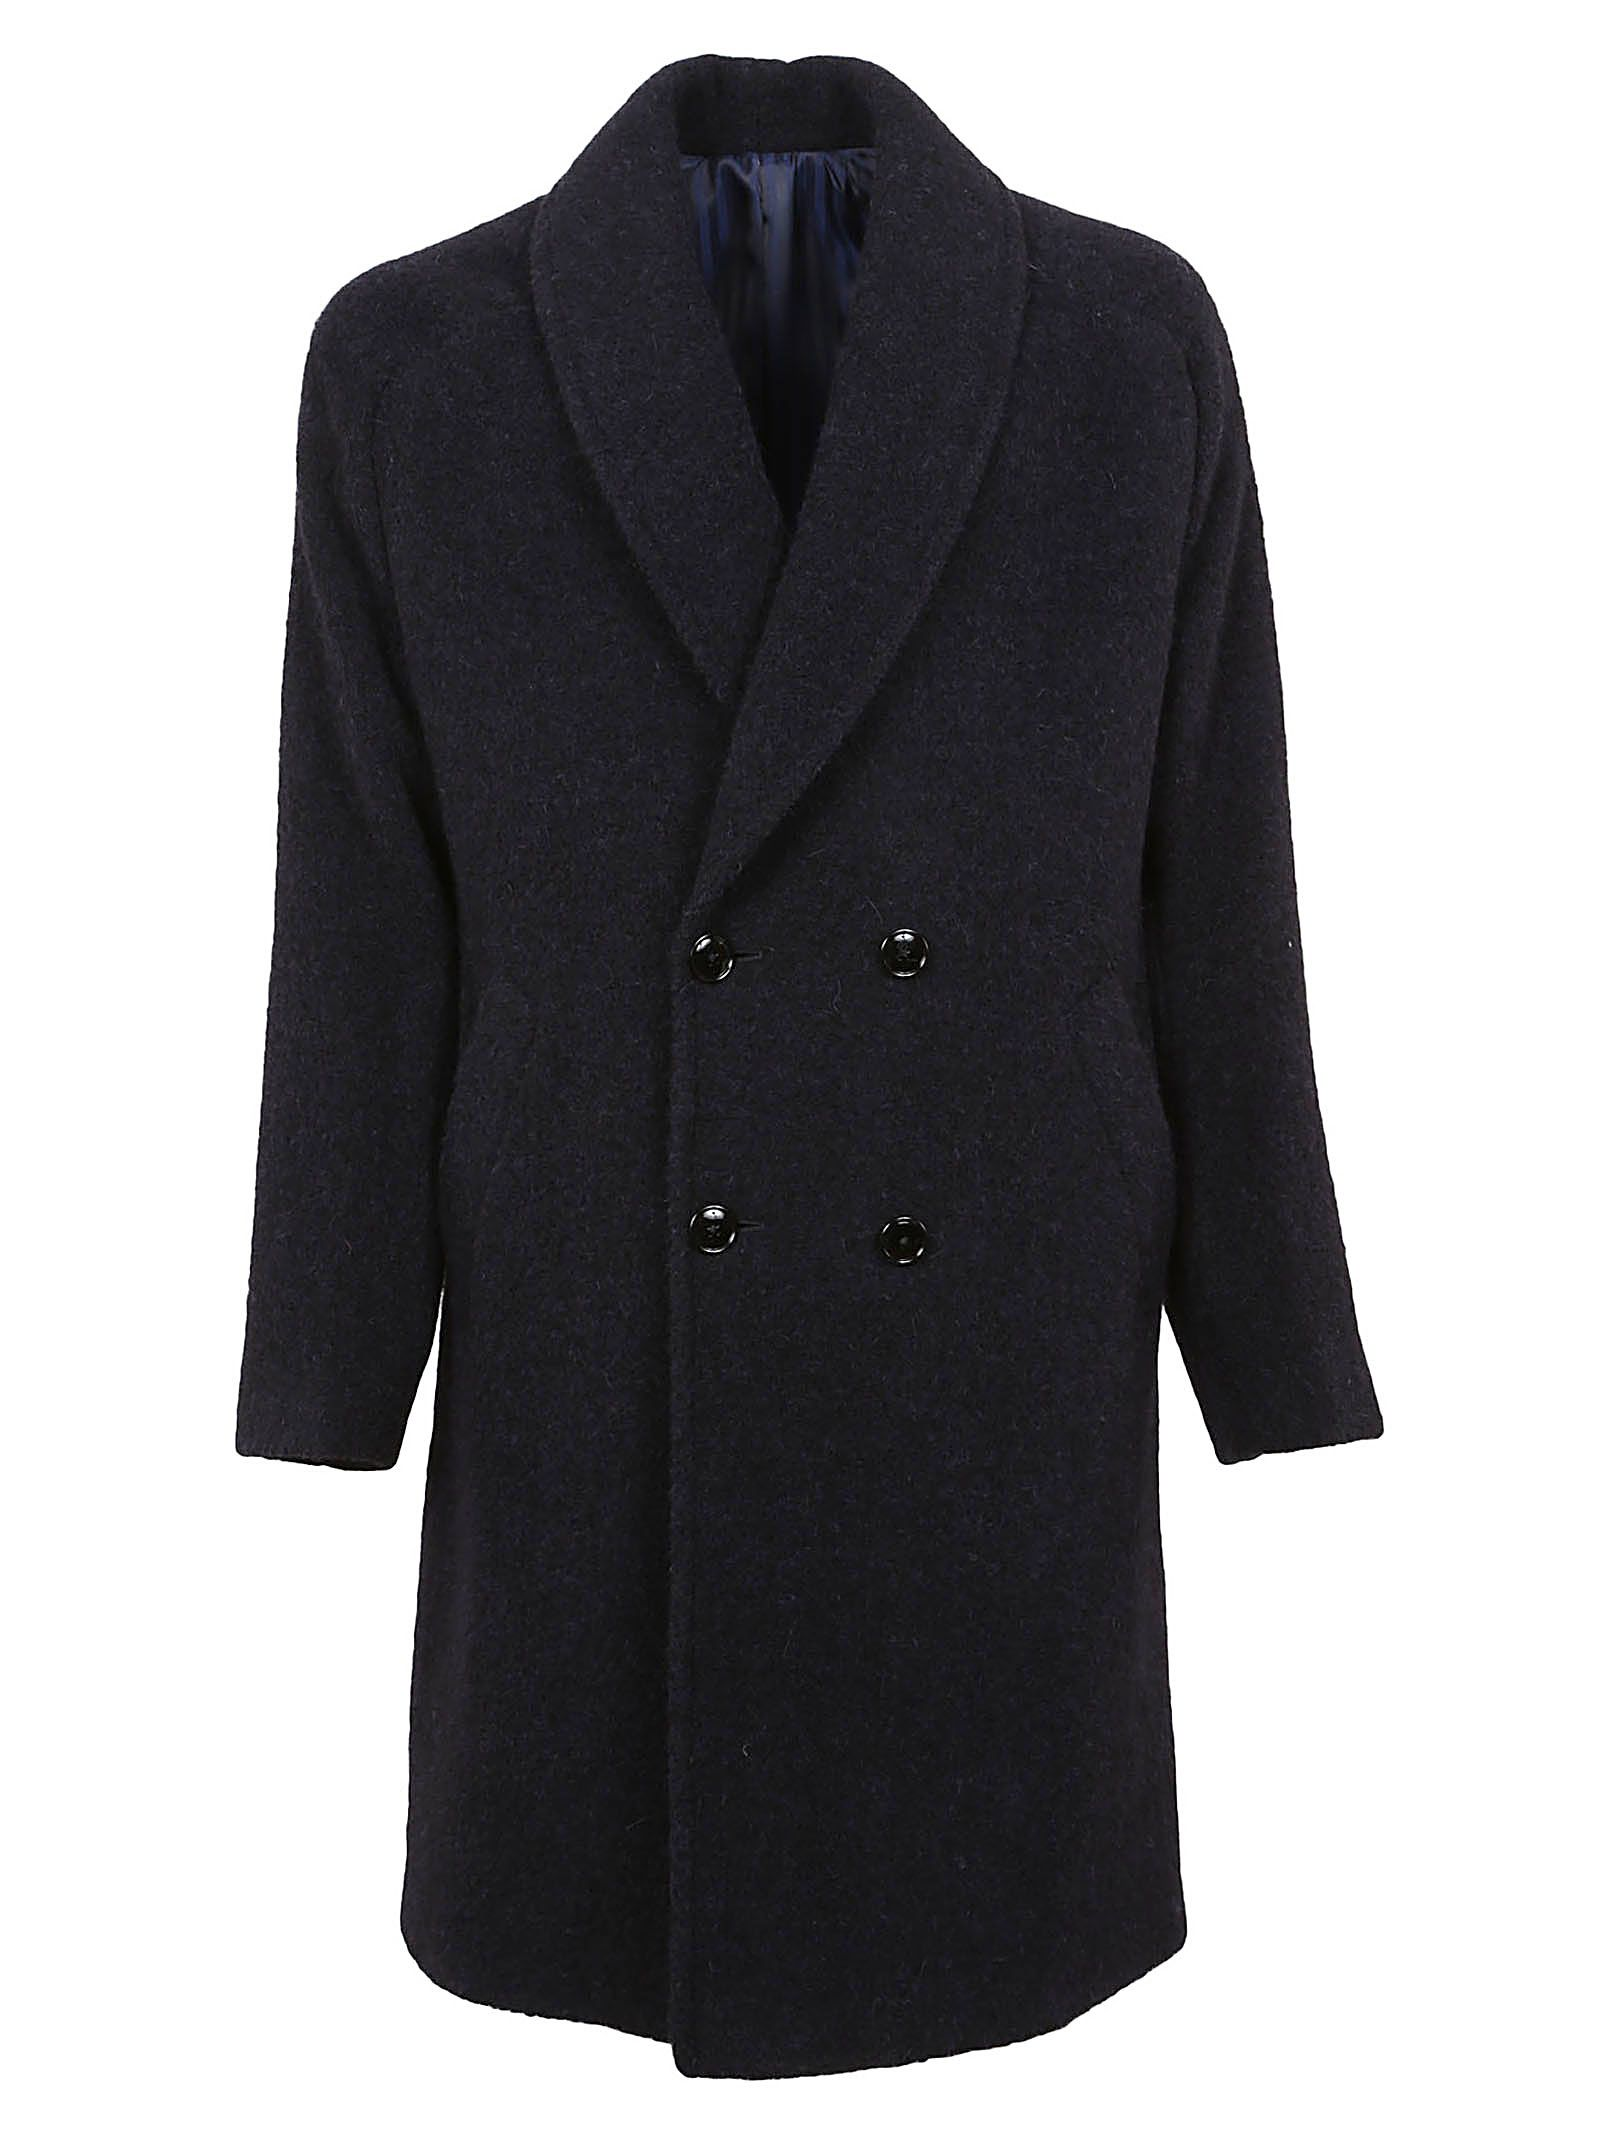 MASSIMO PIOMBO Double Breasted Coat in 1